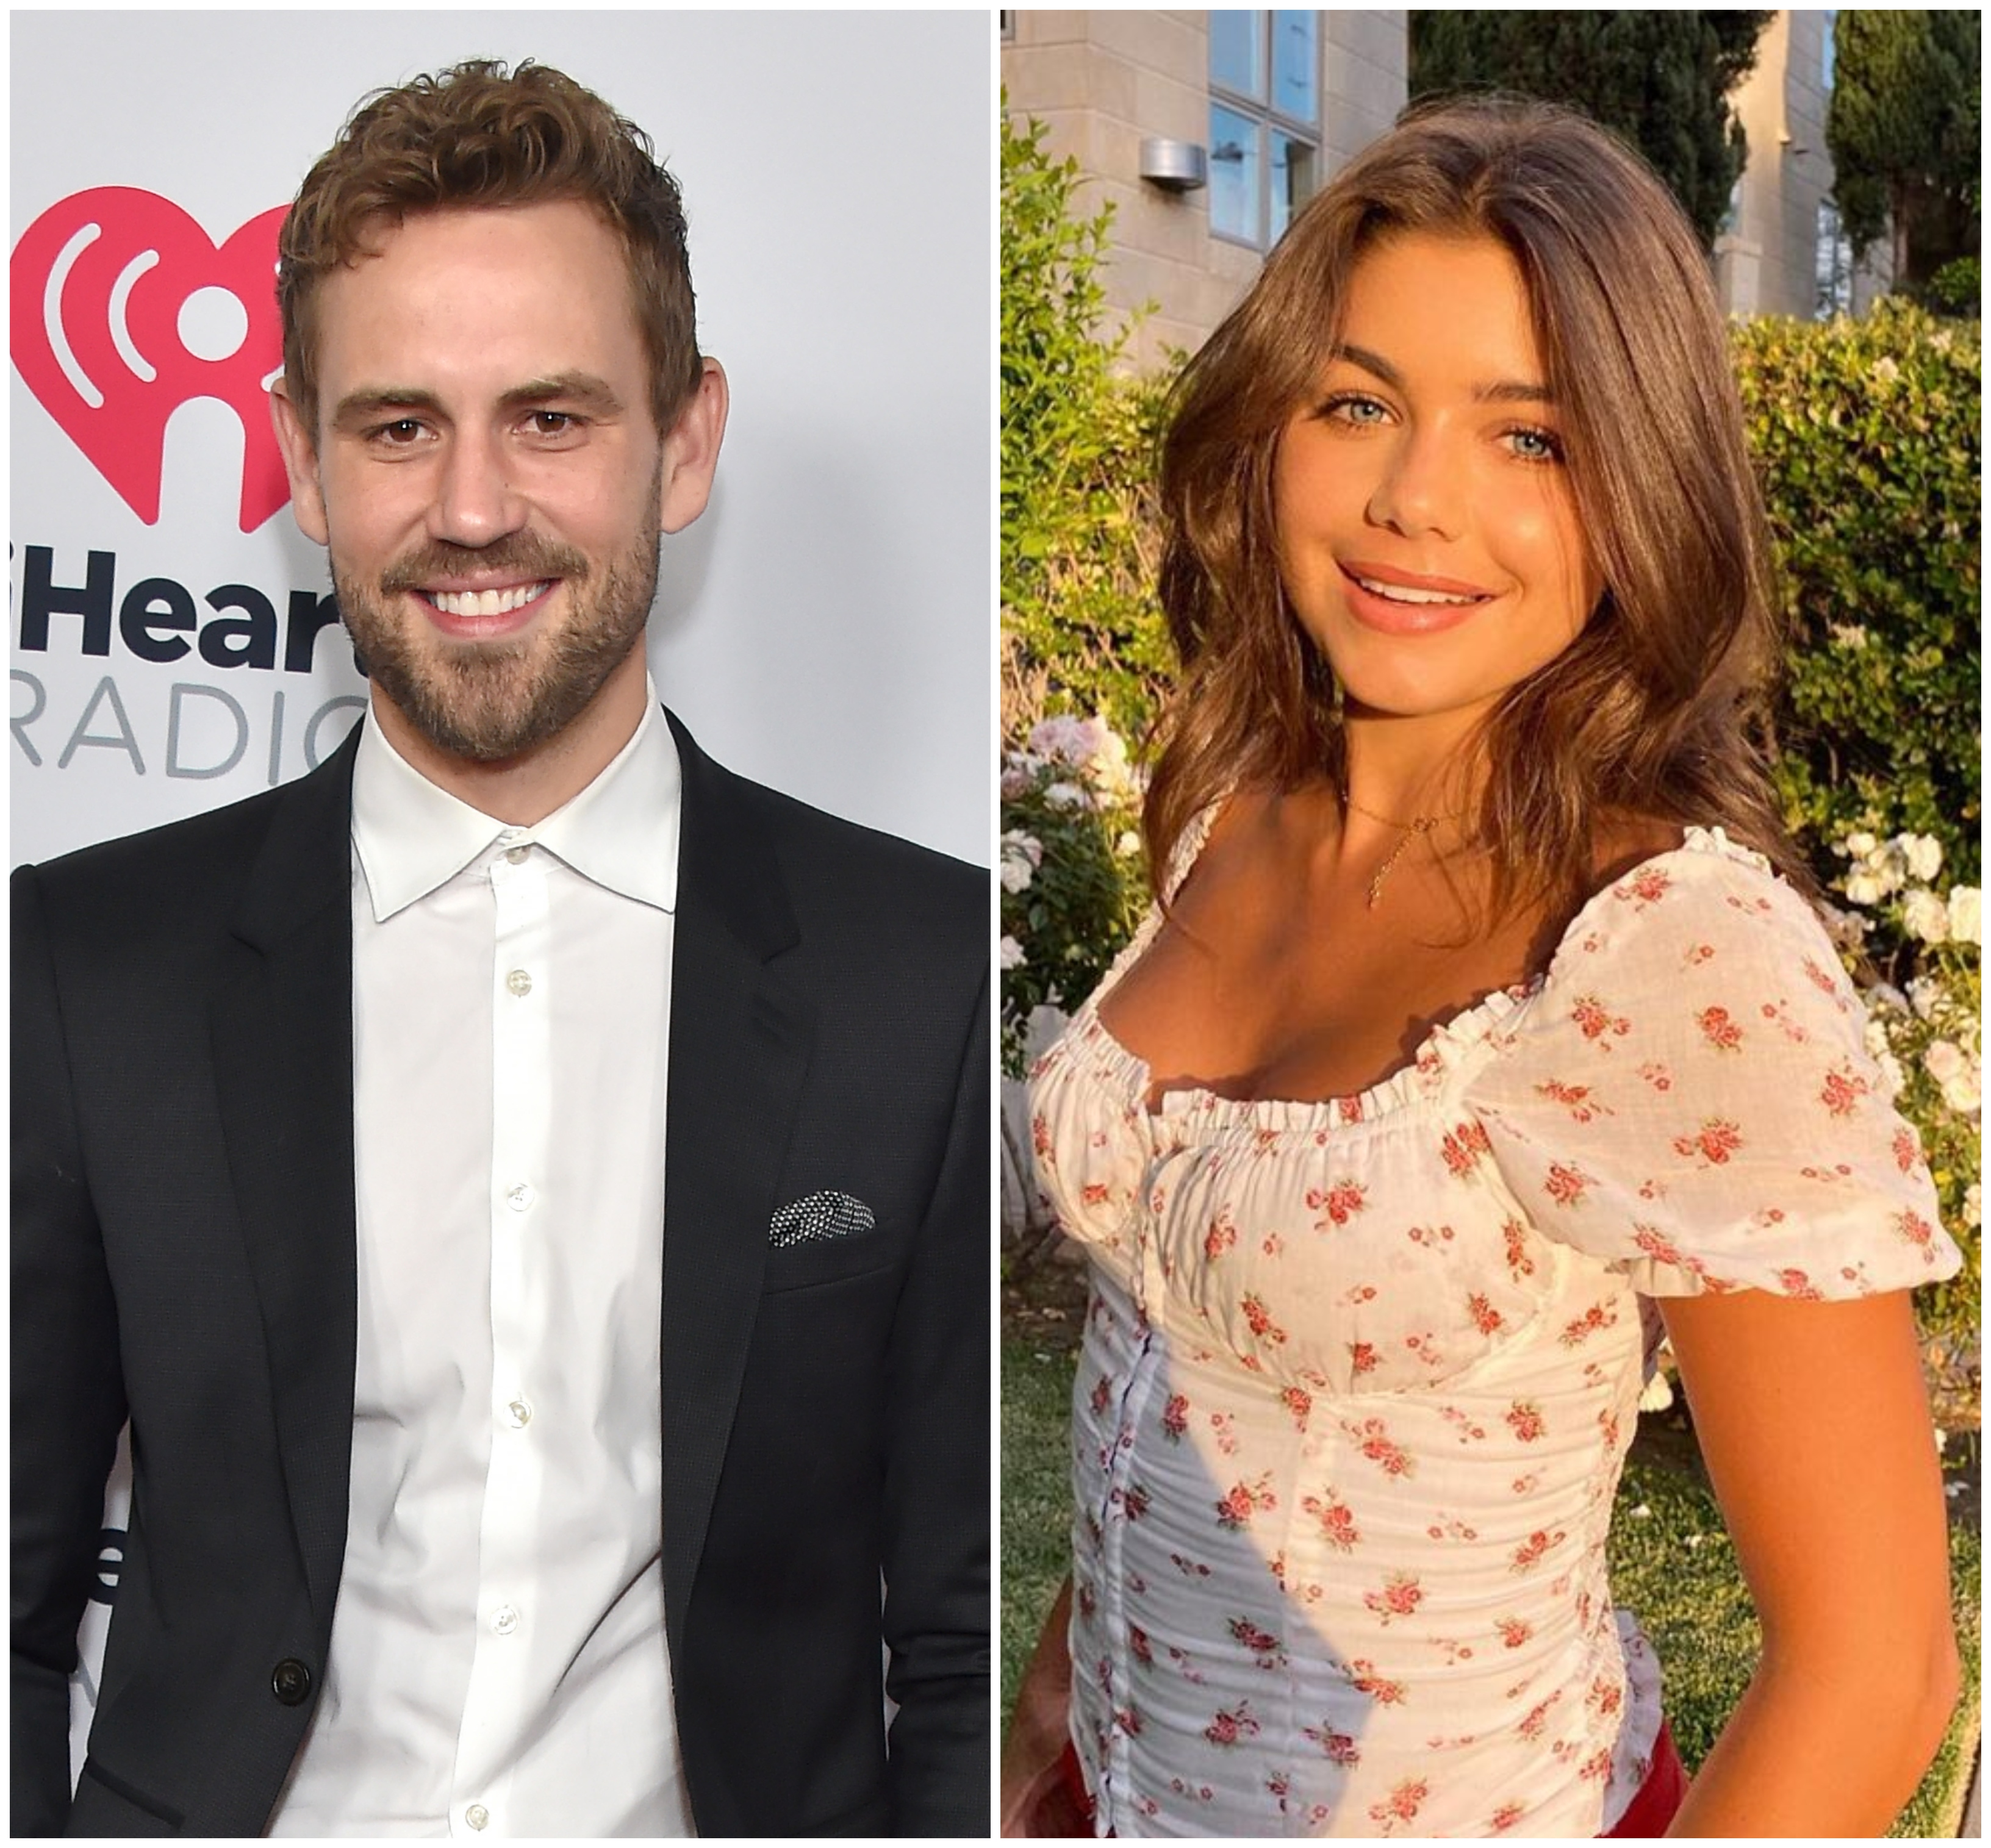 Bachelor nick dating from The Bachelorette: